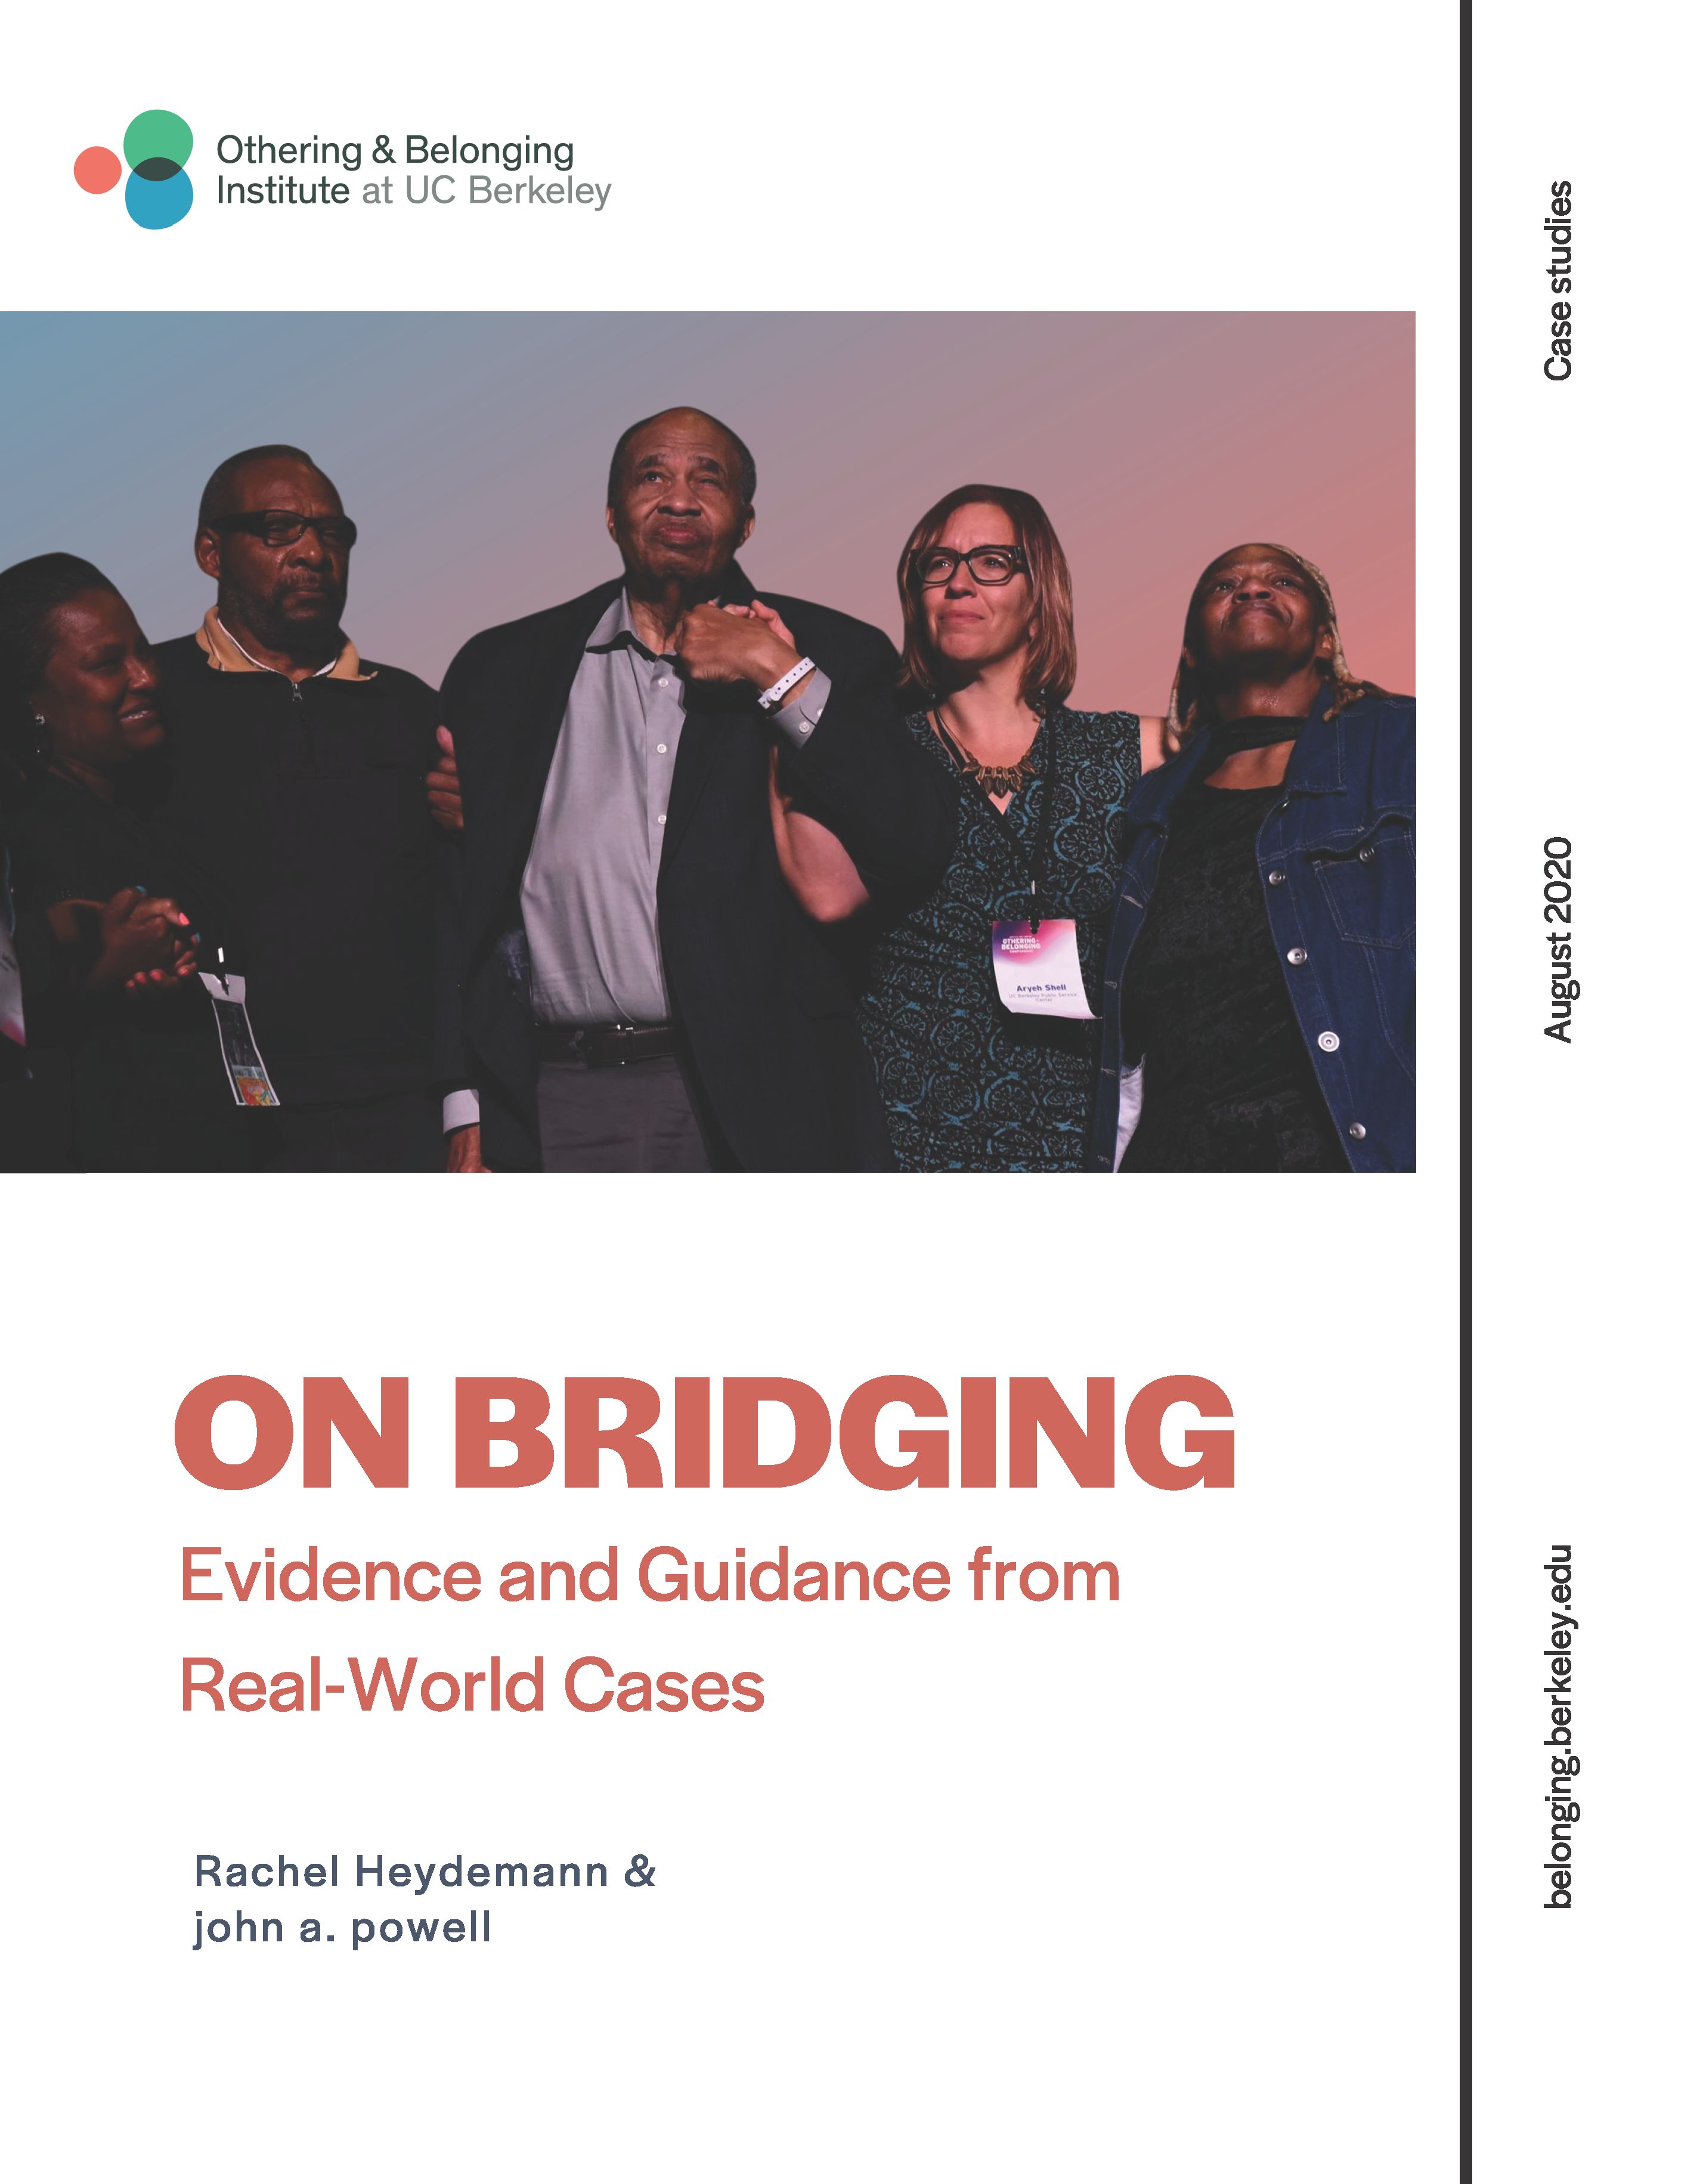 On bridging report cover page